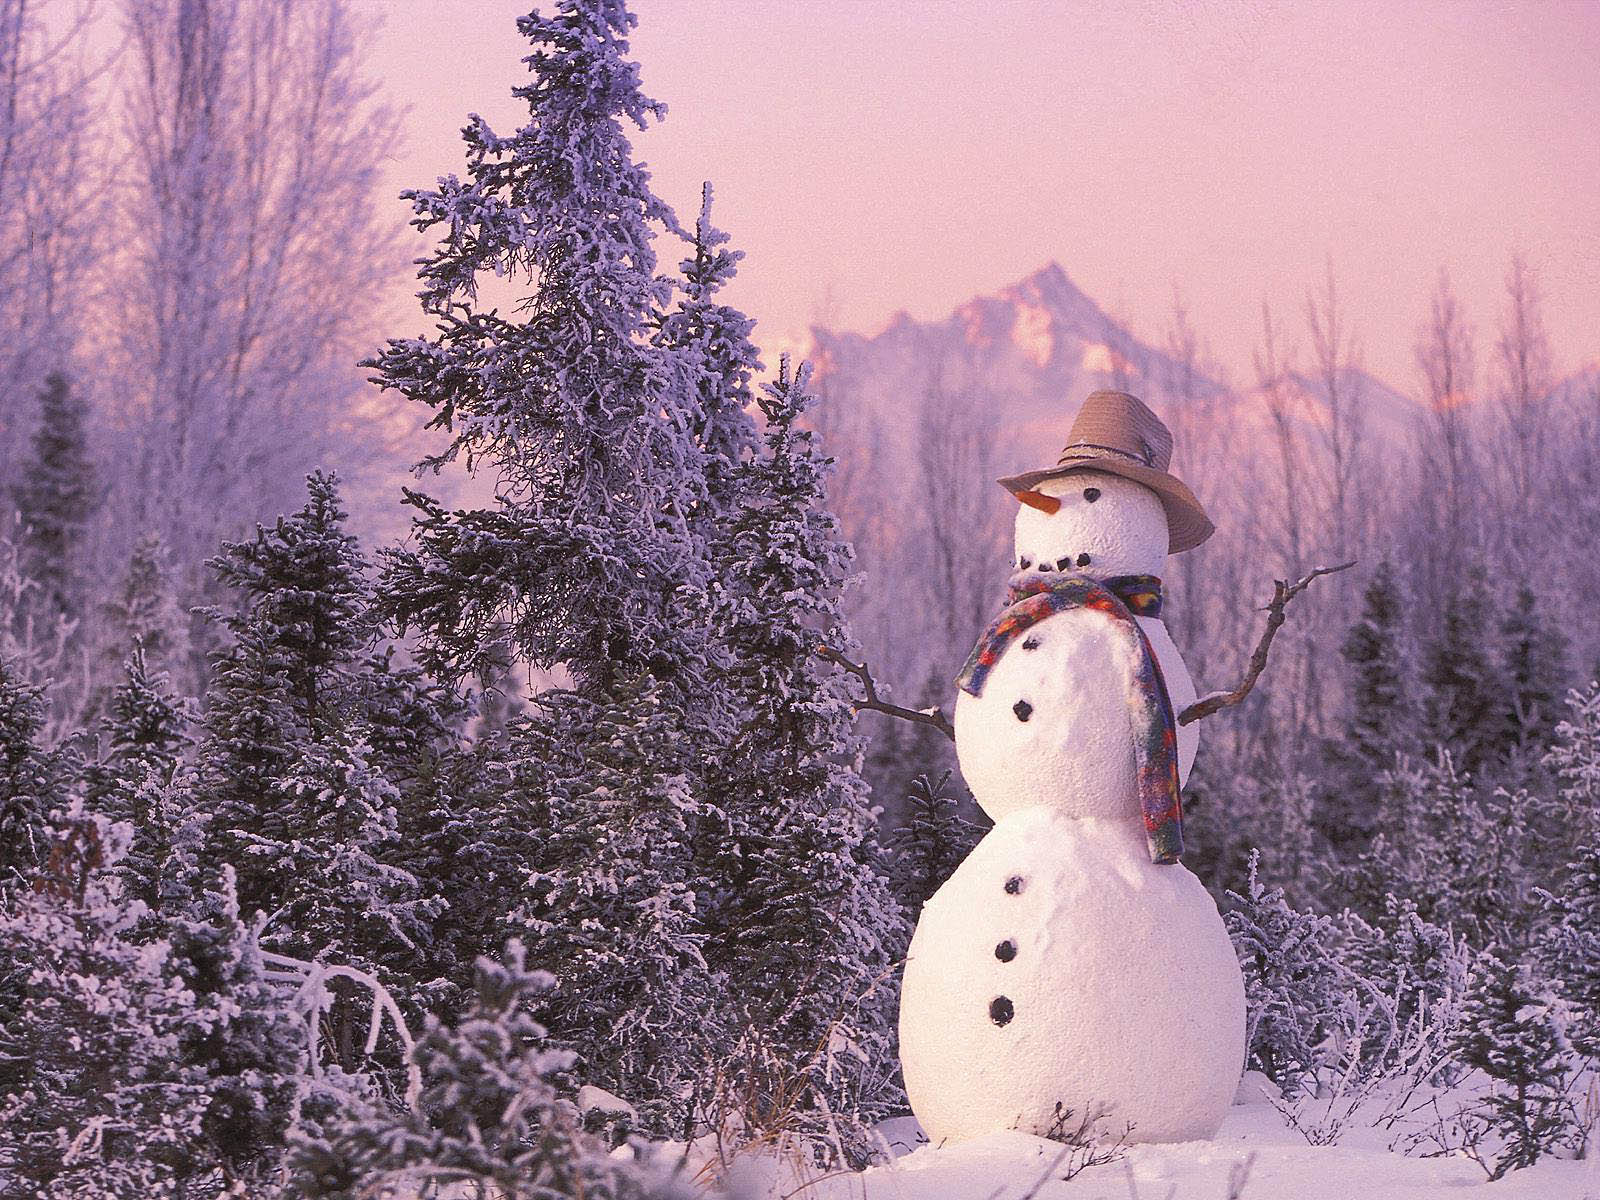 cute country snowman wallpaper - photo #6